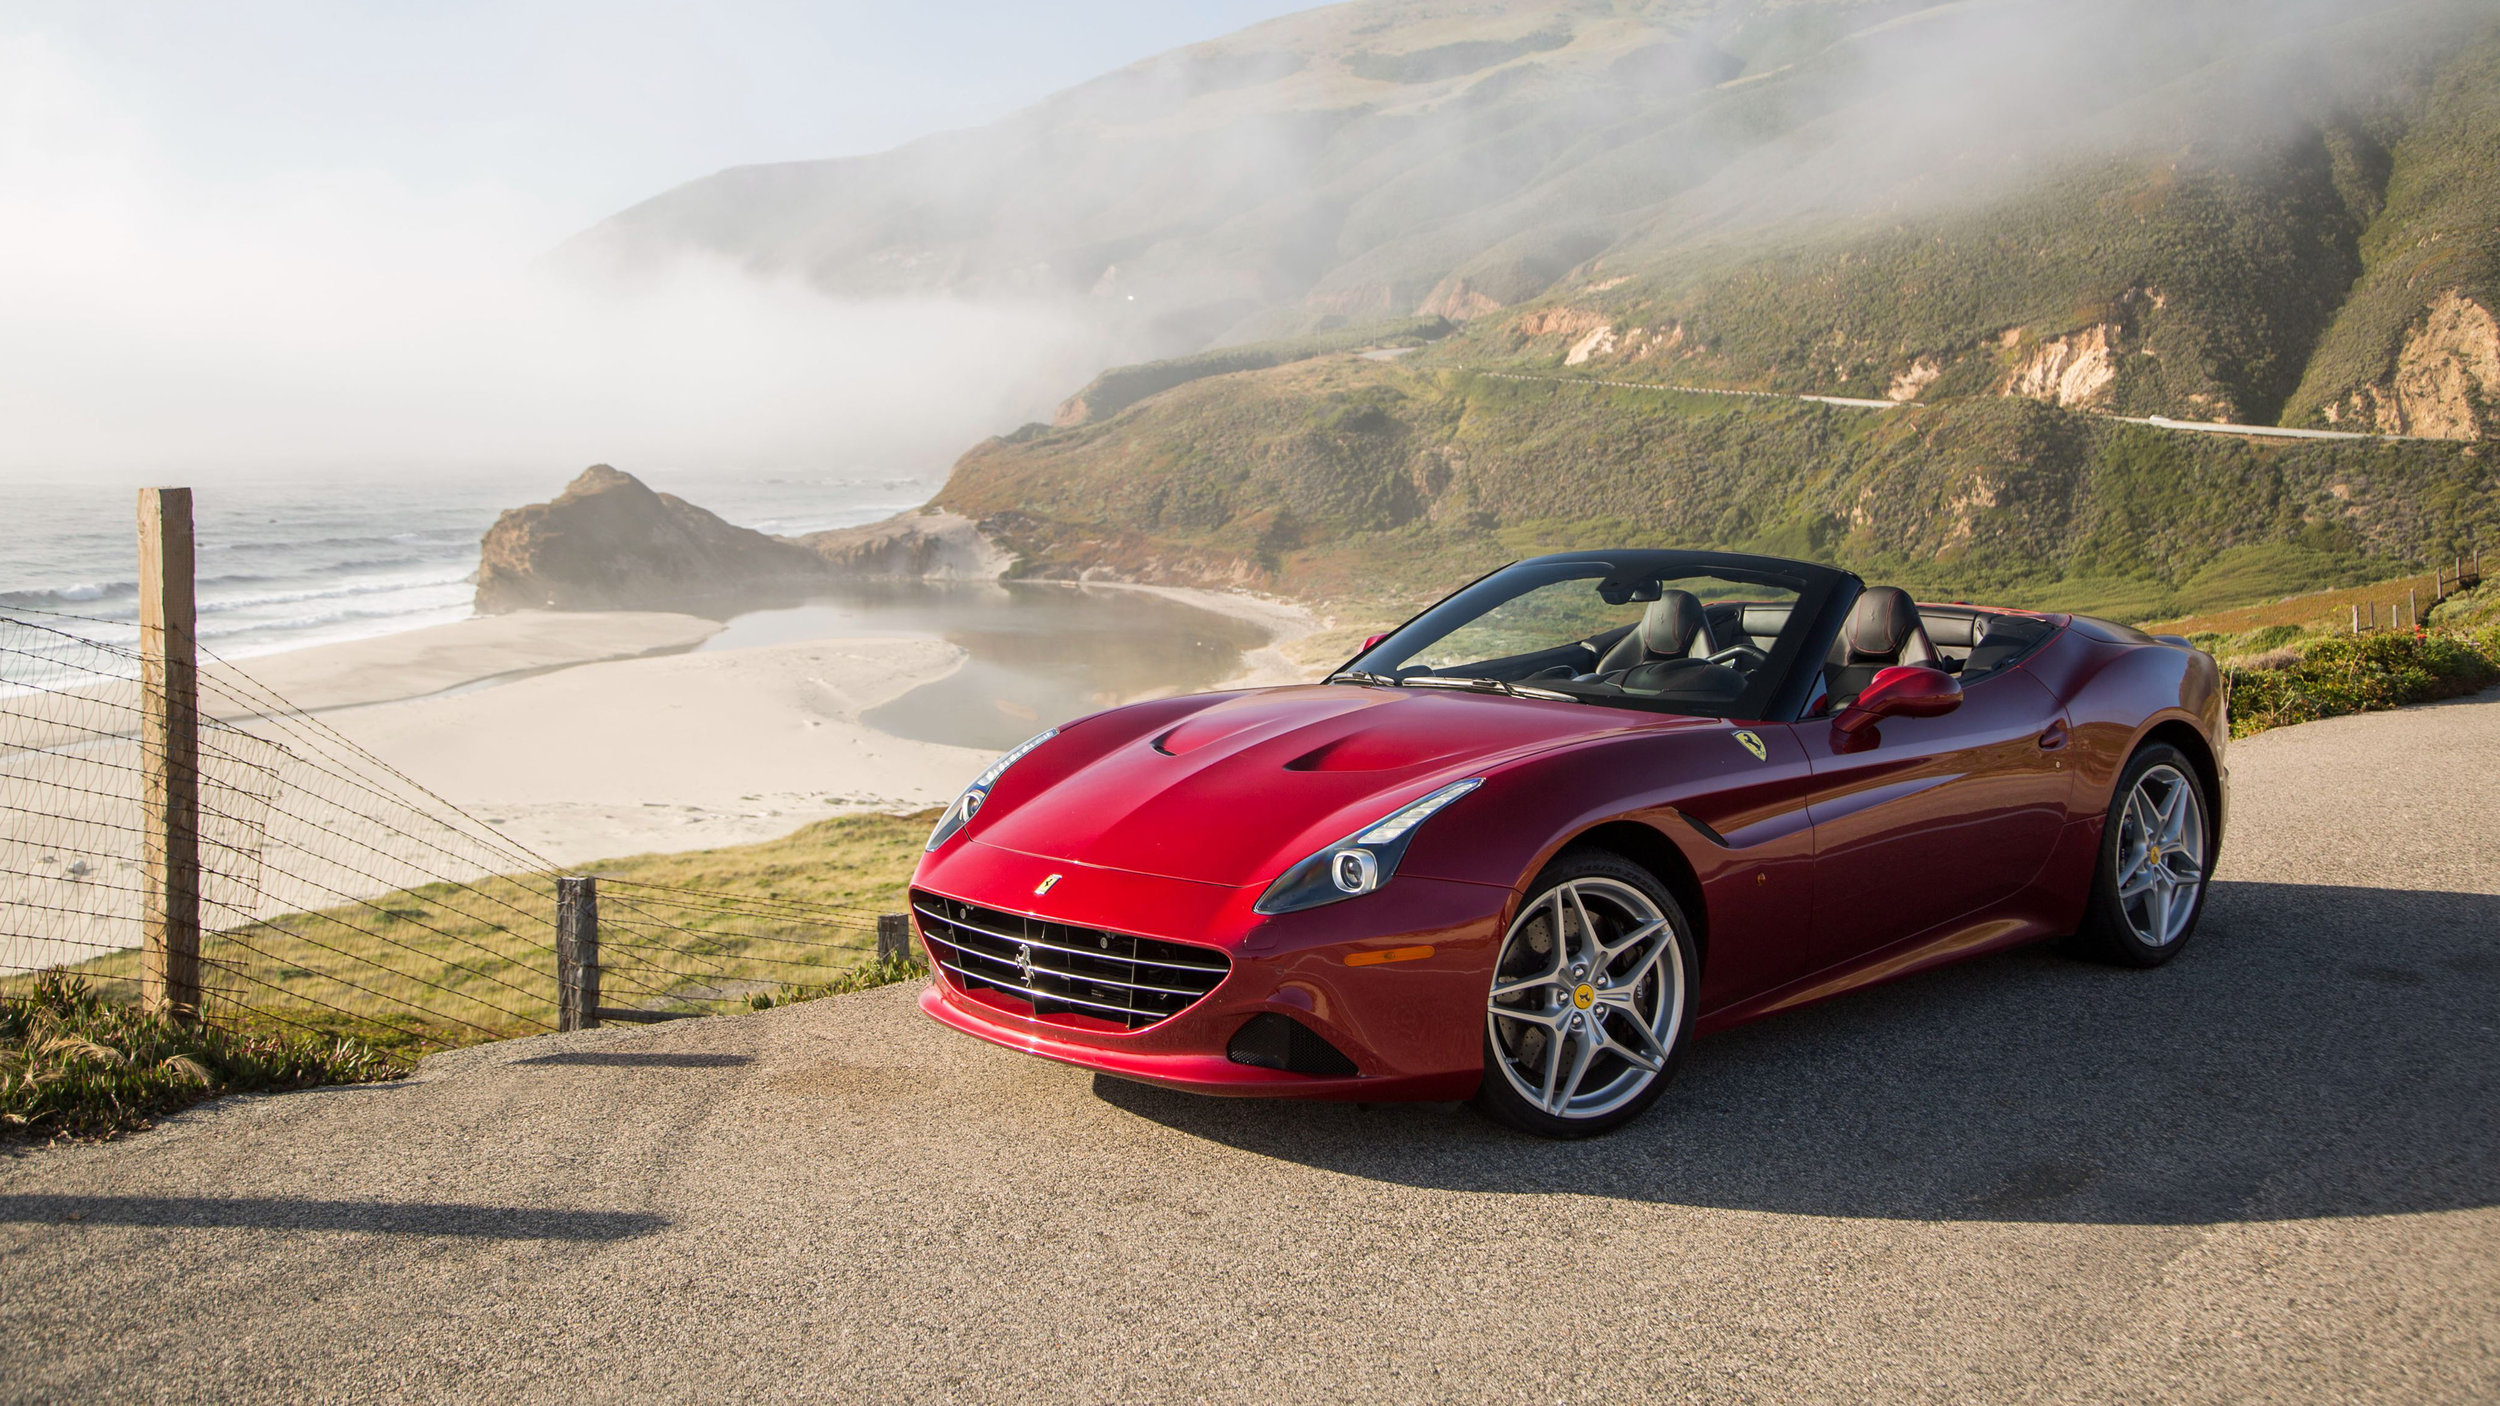 Ferrari California - Color | Red